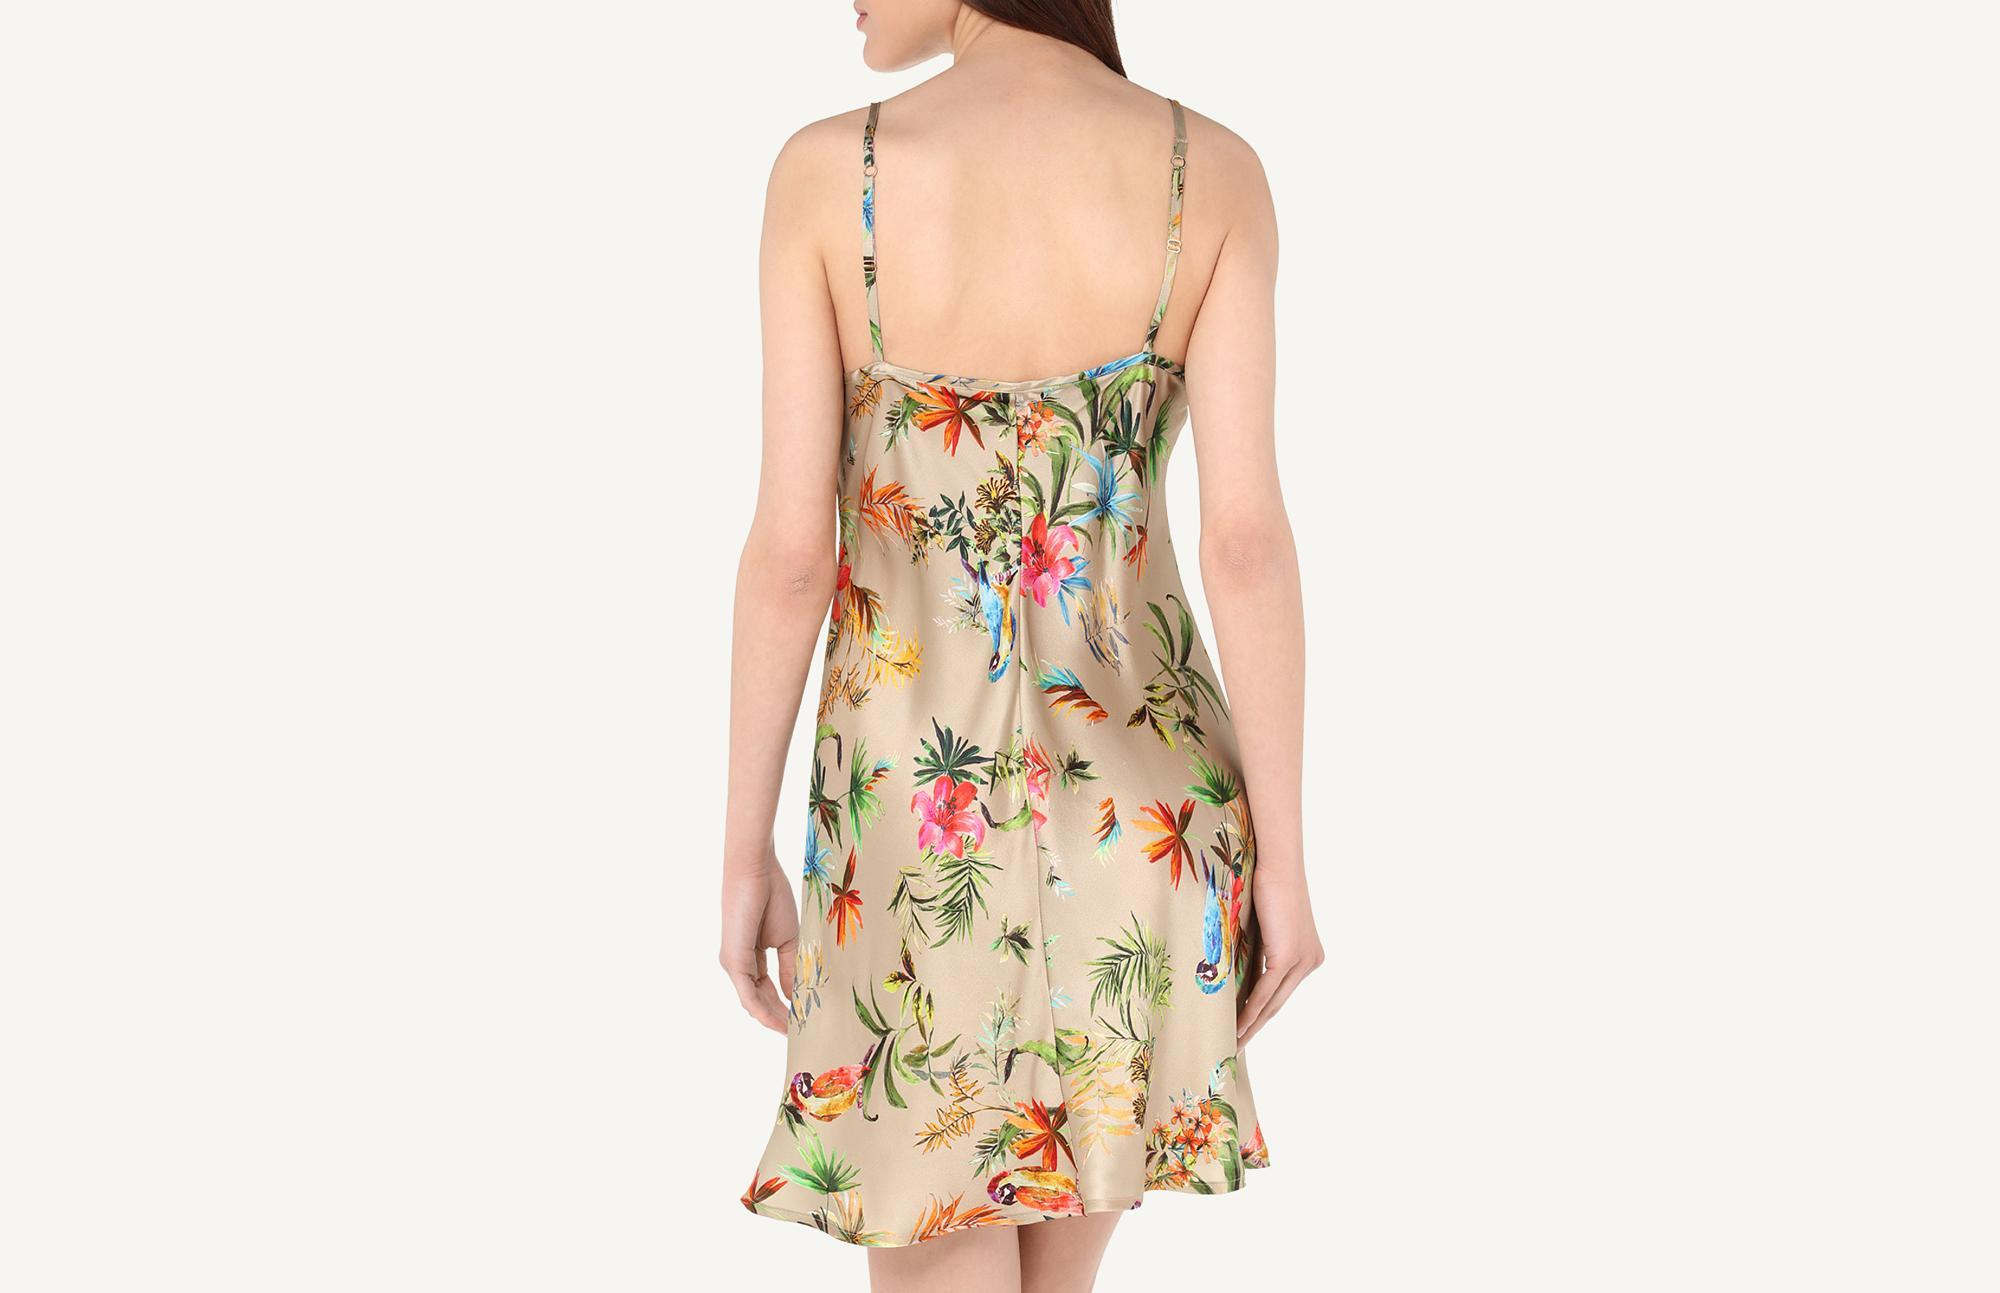 7713e3aa2cb6 Intimissimi - Multicolor Jungle Parrots Silk Satin Slip - Lyst. View  fullscreen